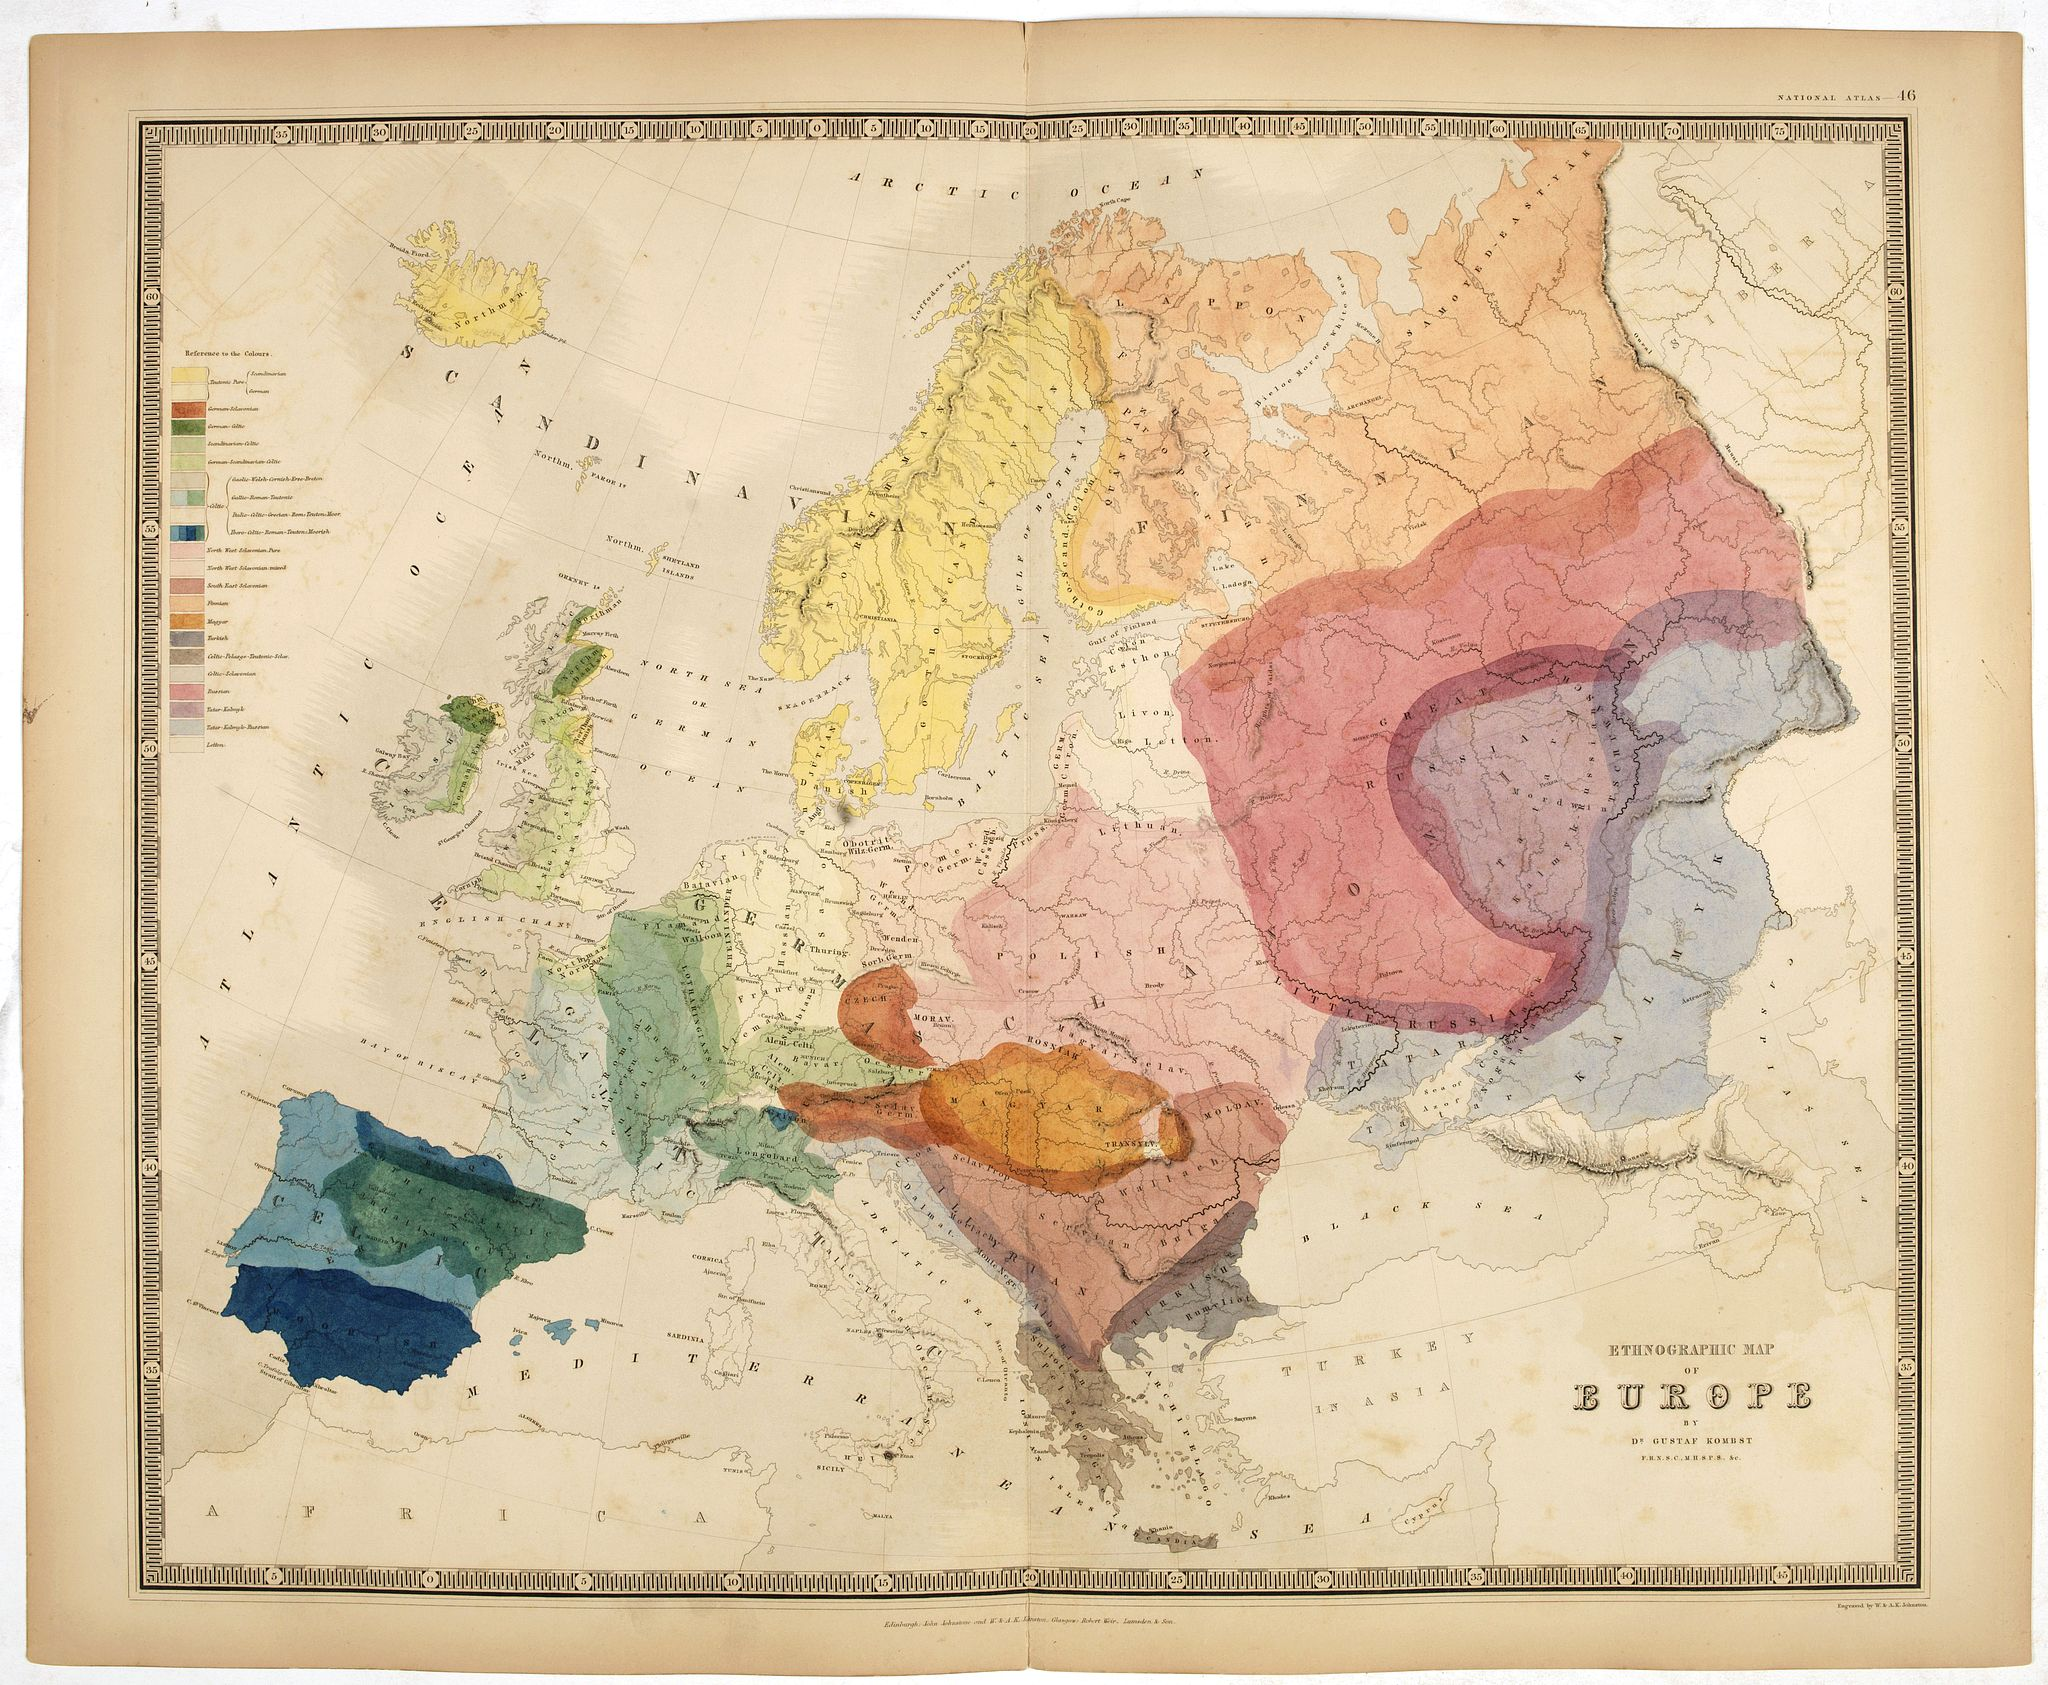 JOHNSTON, J. -  Ethnographic map of Europe by dr. Gustaf Kombst.